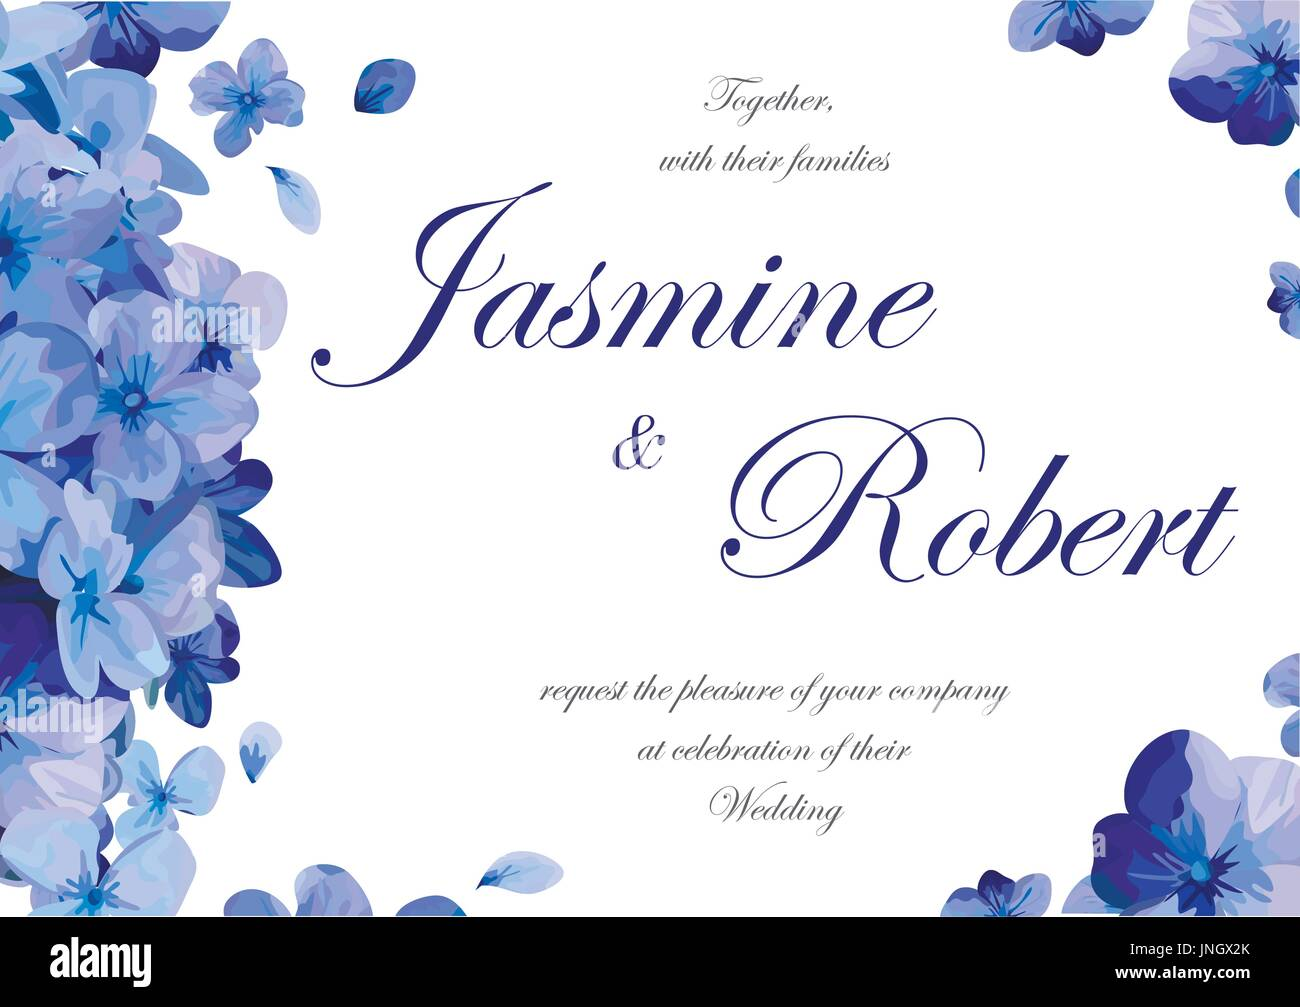 Wedding invitation flower invite card design with blue purple garden ...